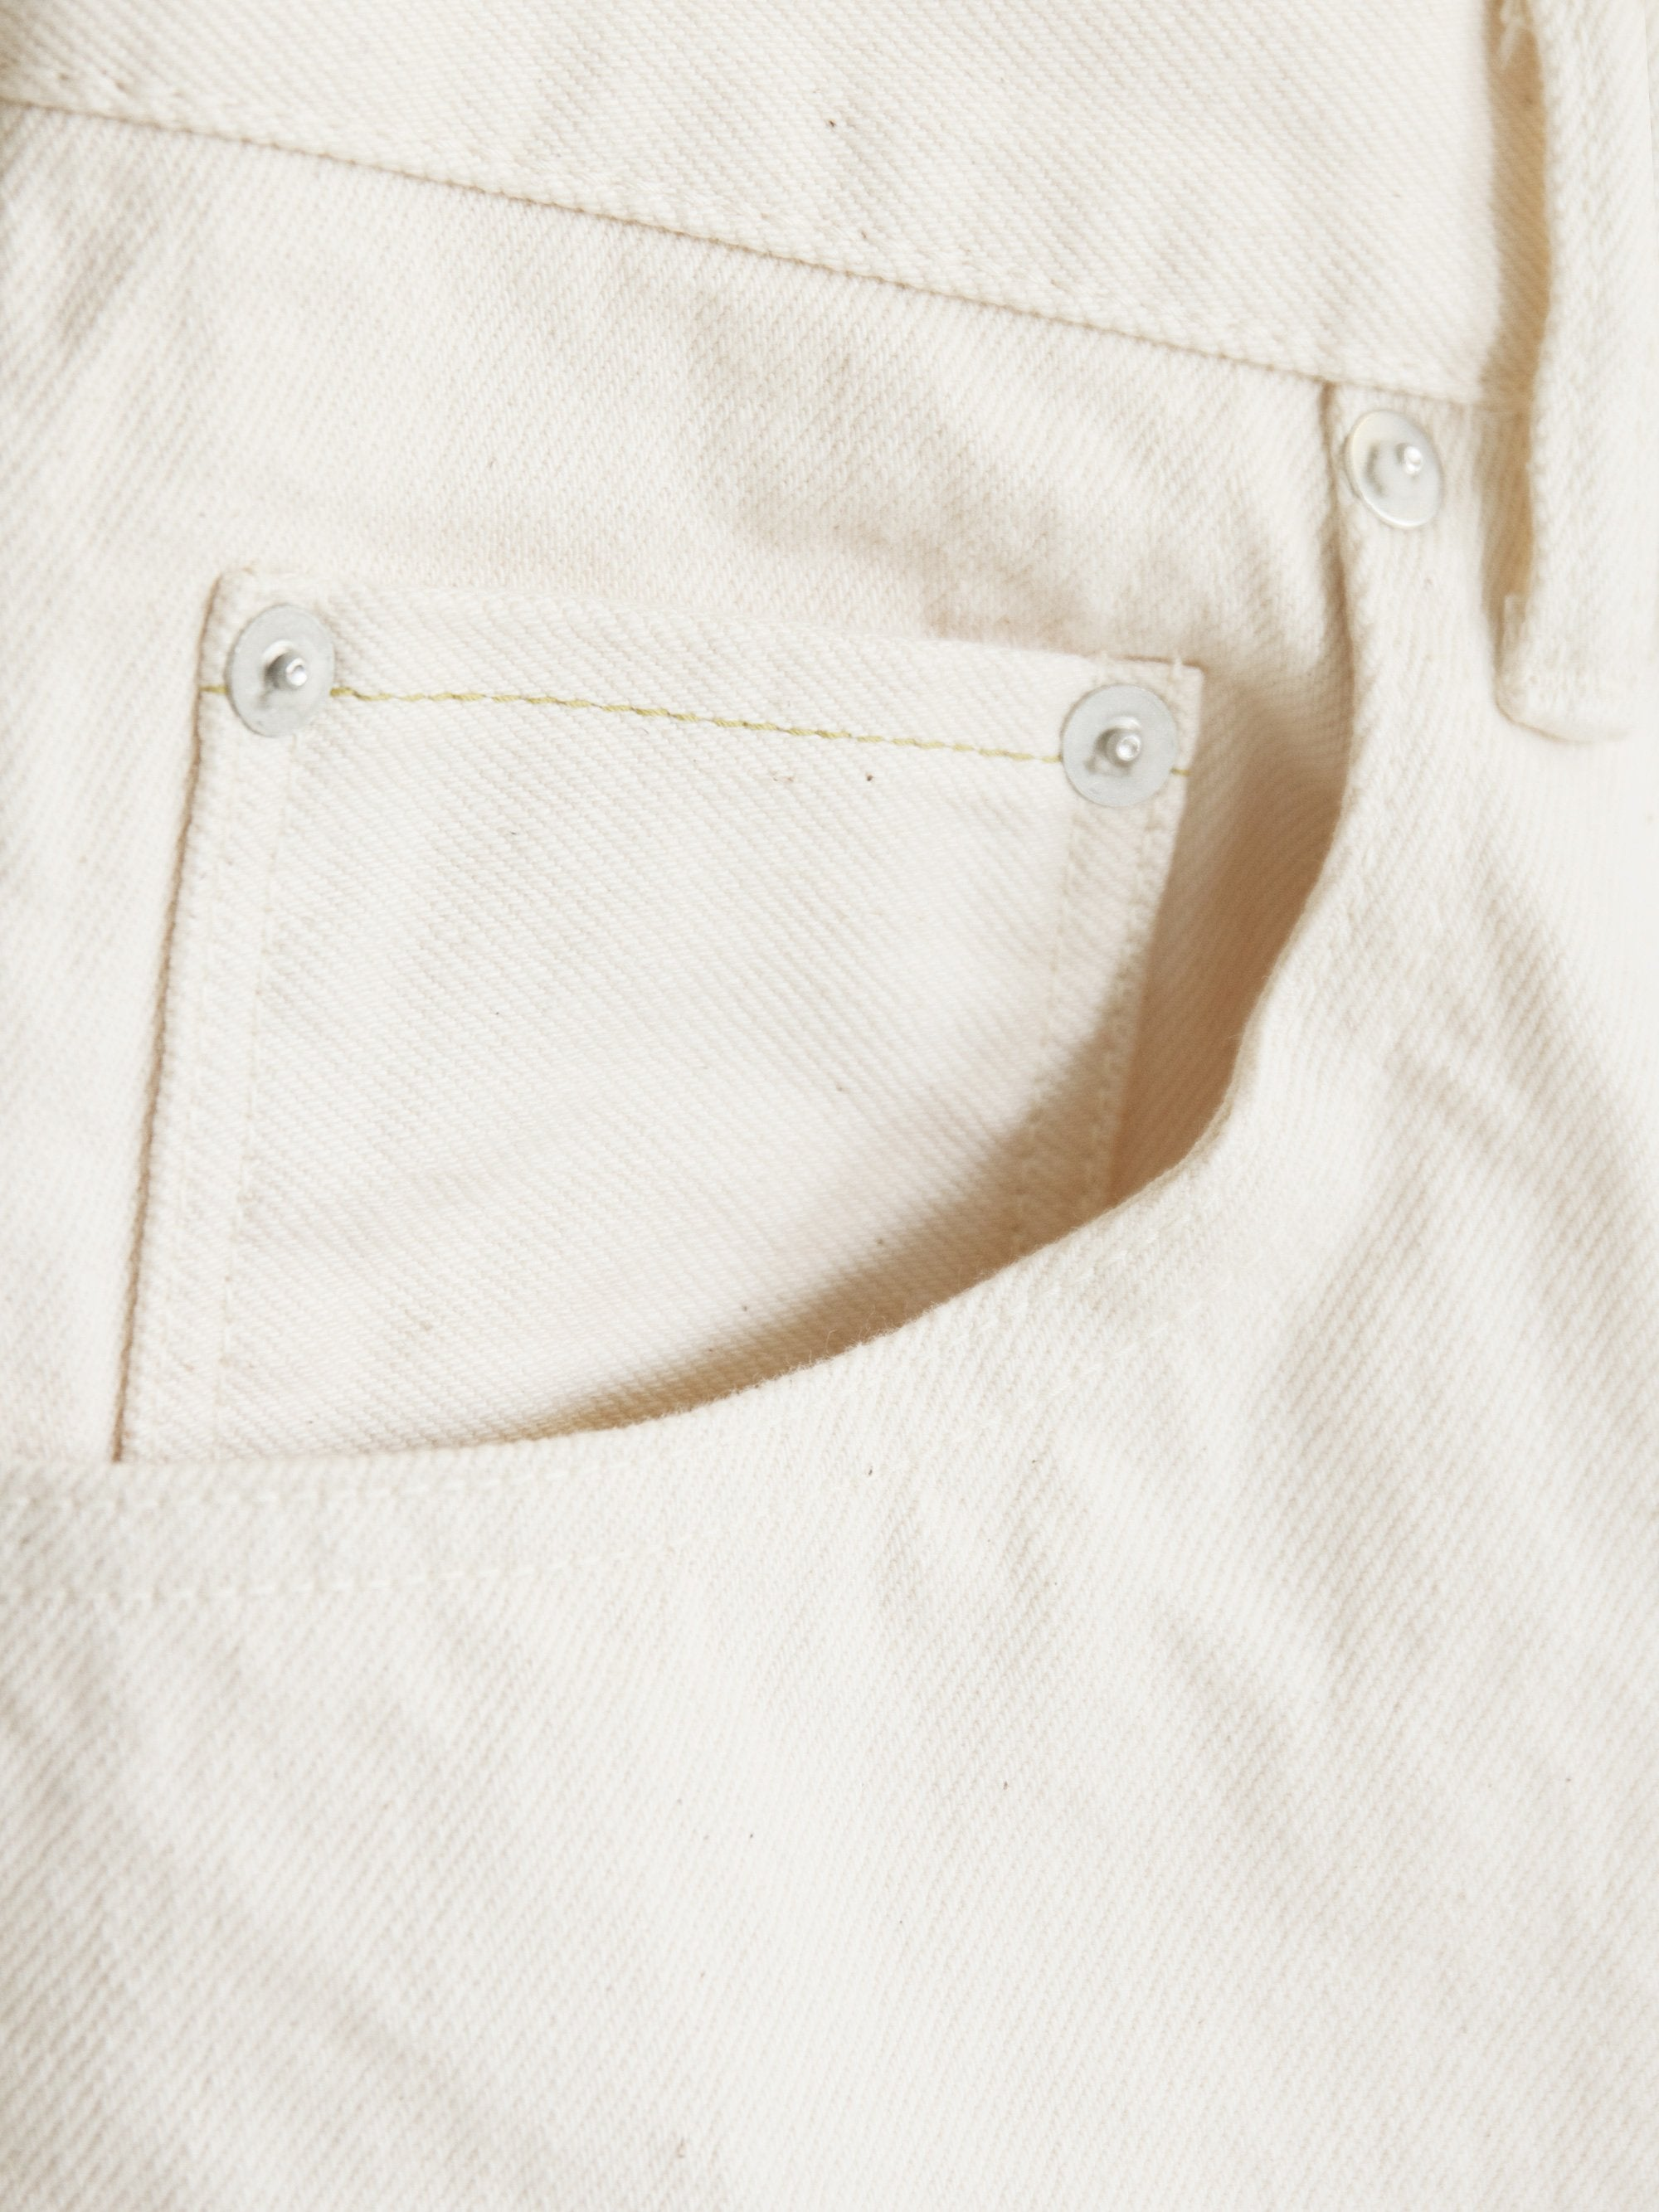 Namu Shop - Hatski Loose Tapered Denim - Ecru (re-stocked)